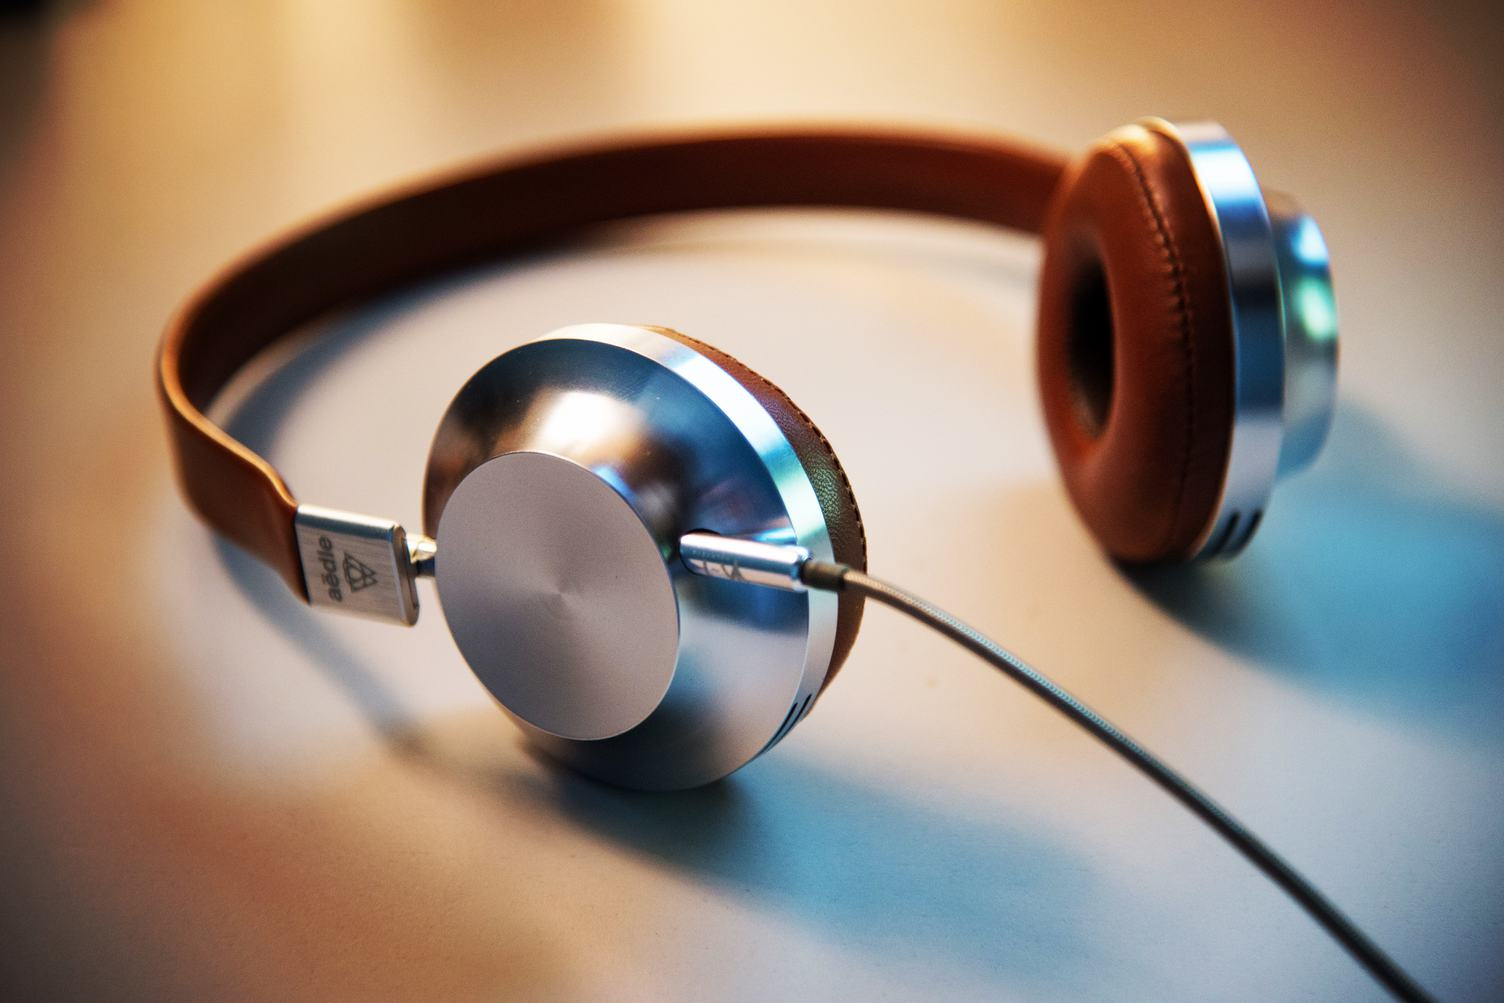 Closeup of Metal and Brown Leather Headphones